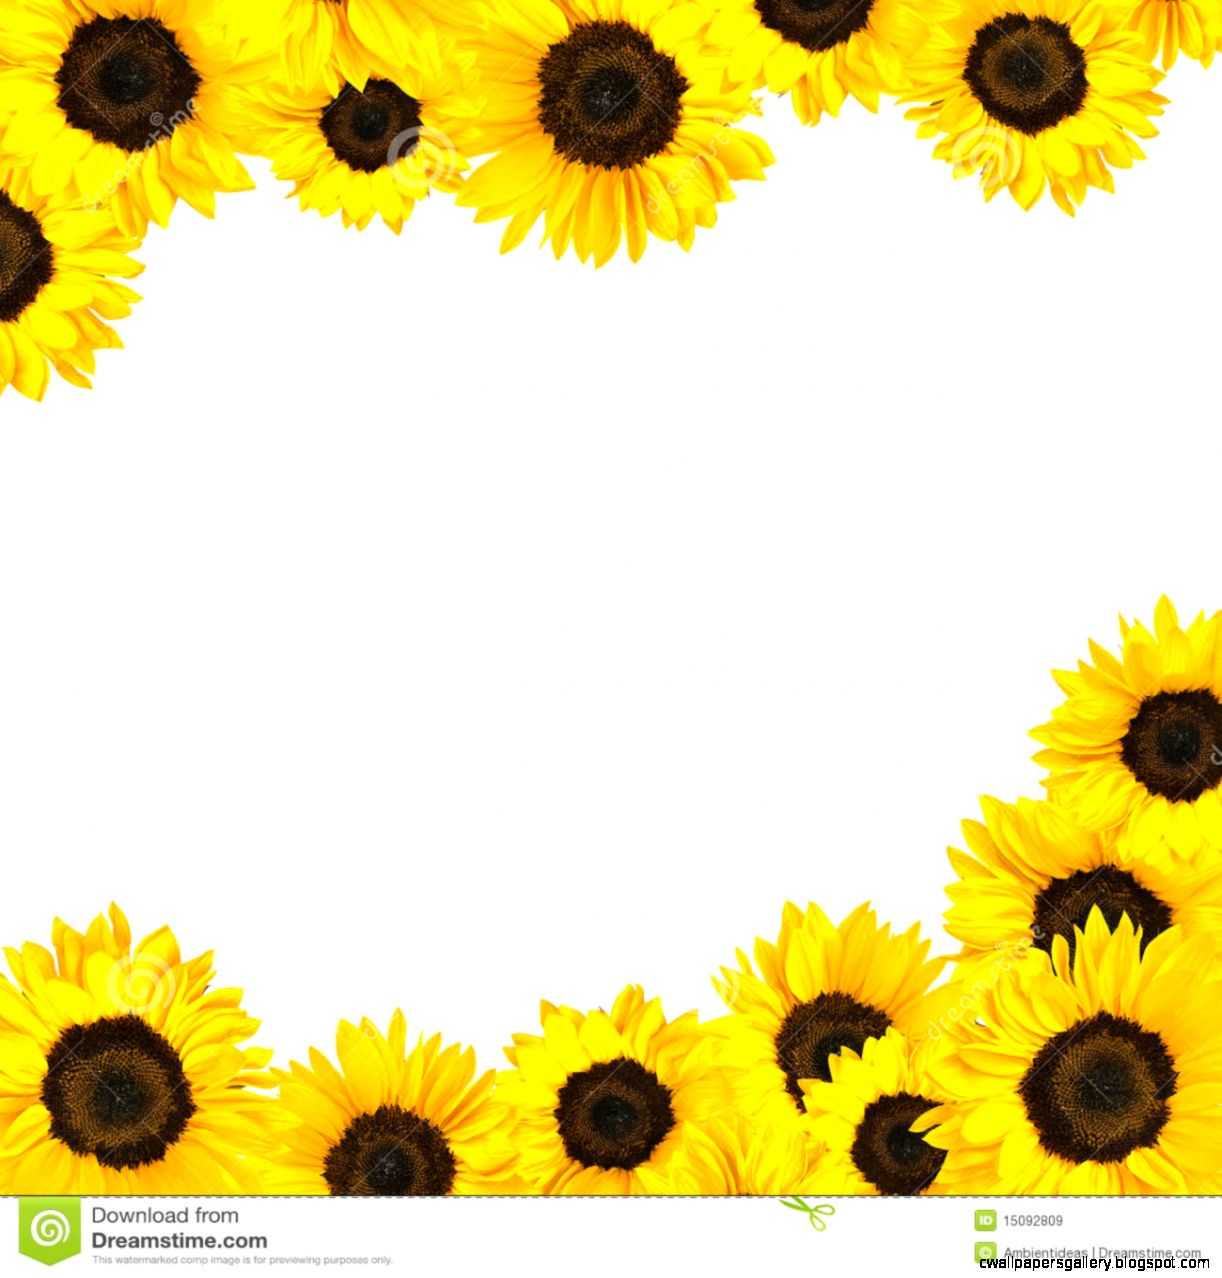 Boarder clipart sunflower. Pictures border drawing art